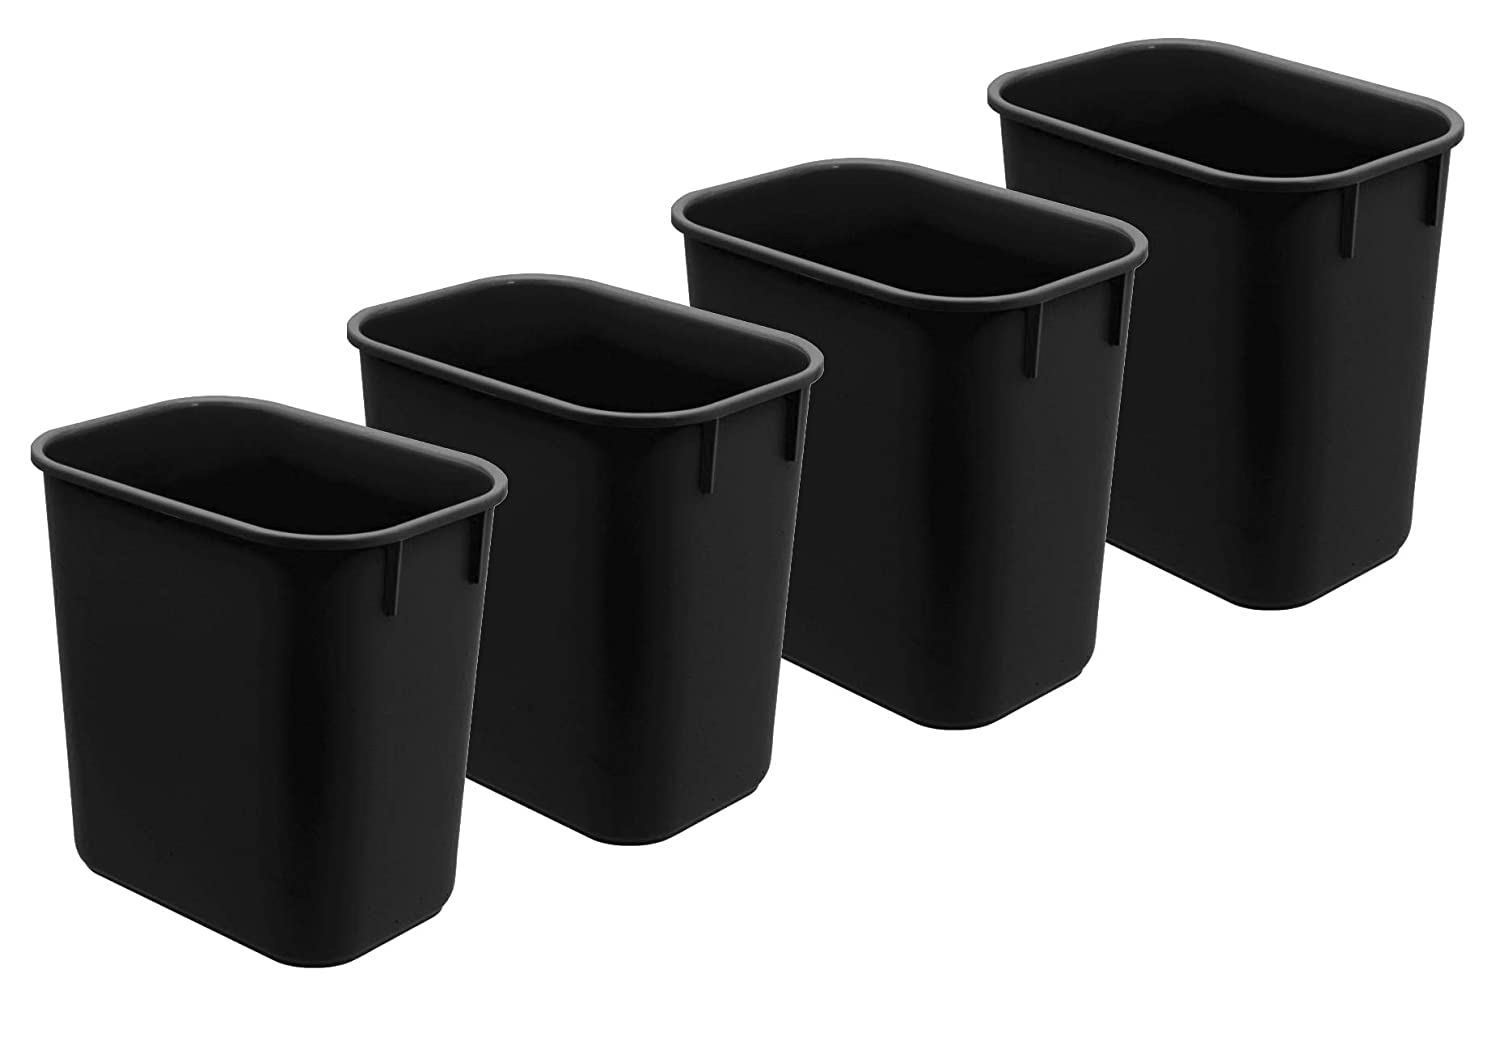 Acrimet Wastebasket 13QT (4 - Pack) (Black Color) 576.2